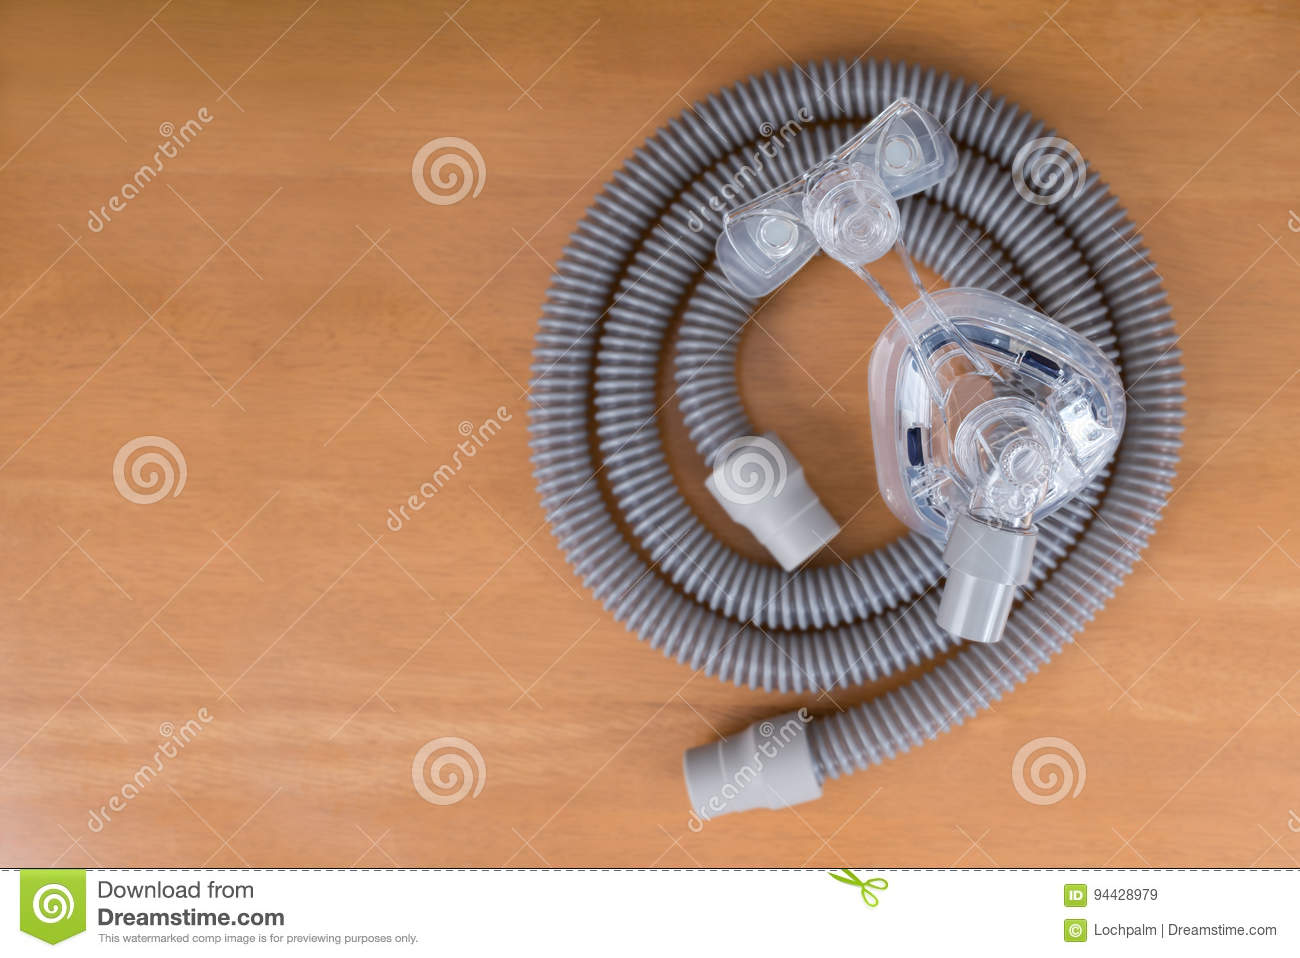 Pair of CPAP mask and tubing.